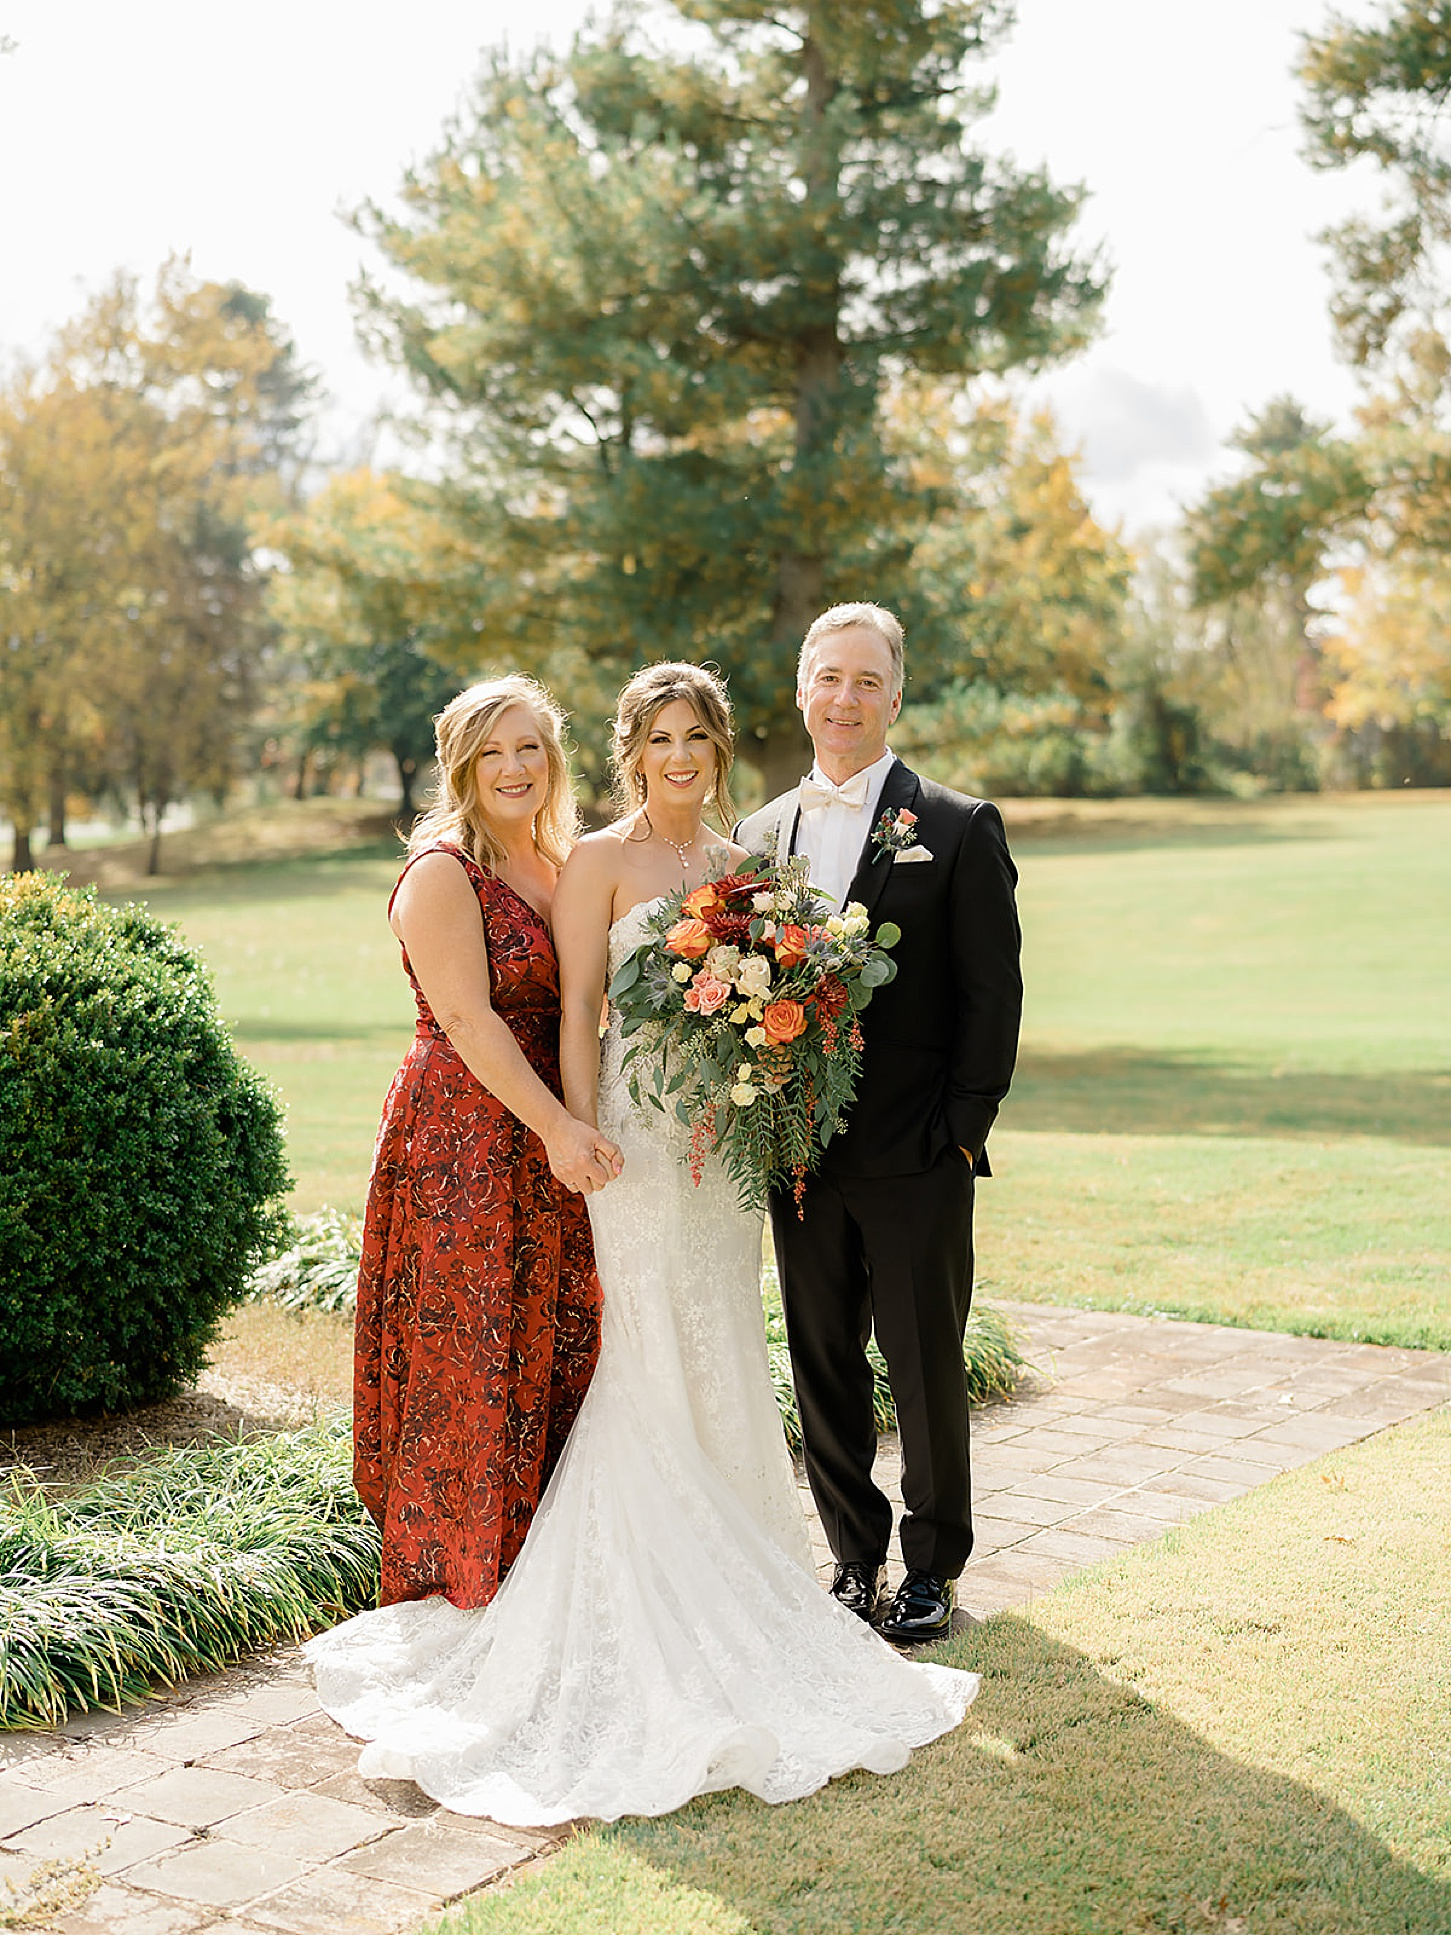 Tennessee Destination Wedding Photography by Magdalena Studios 0016